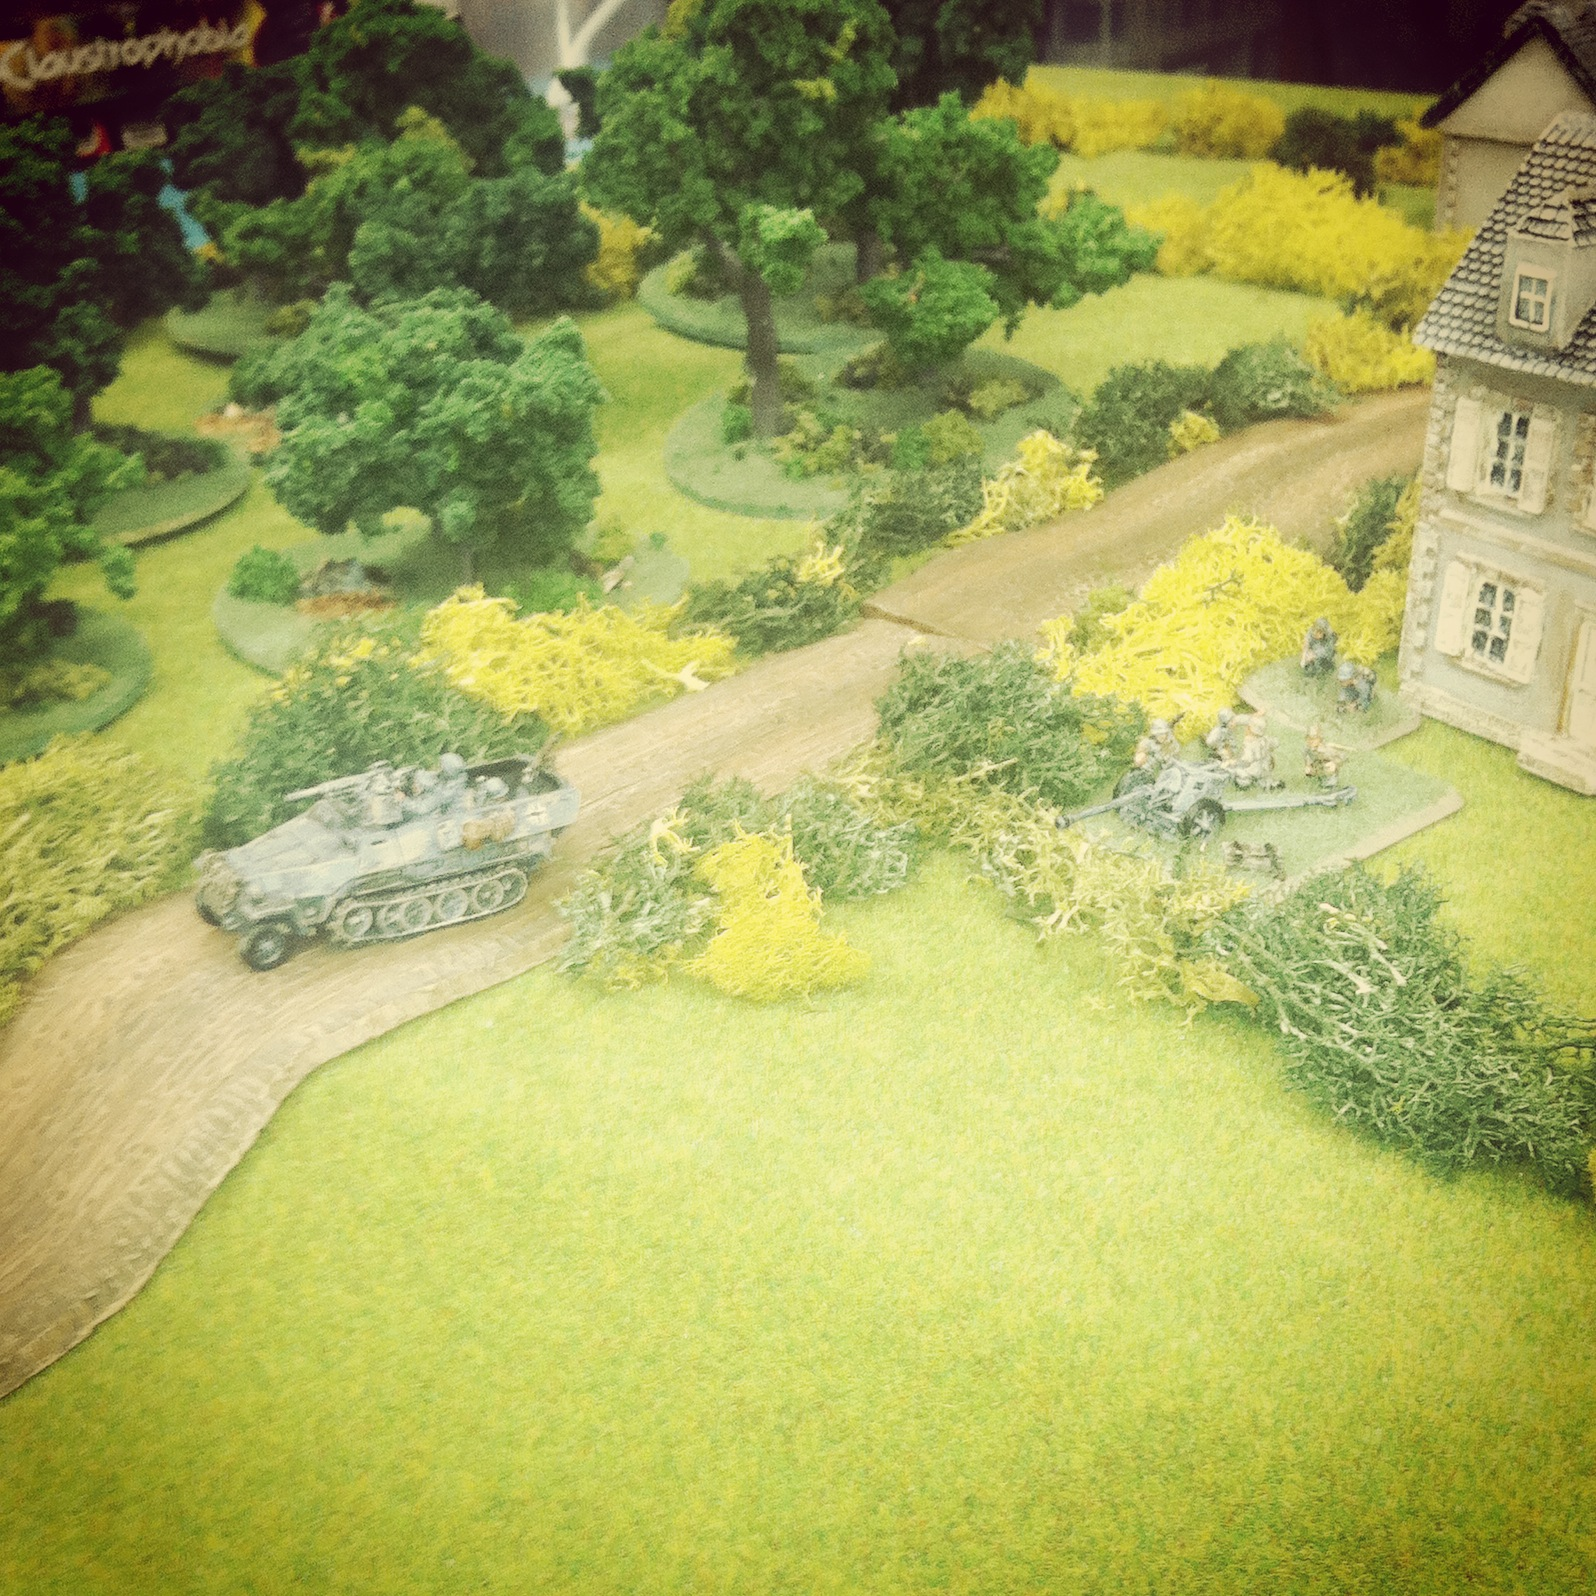 A German Pak 40 andSdkfz 10/1 break their cover onHill 91to engage the paralyzed American column